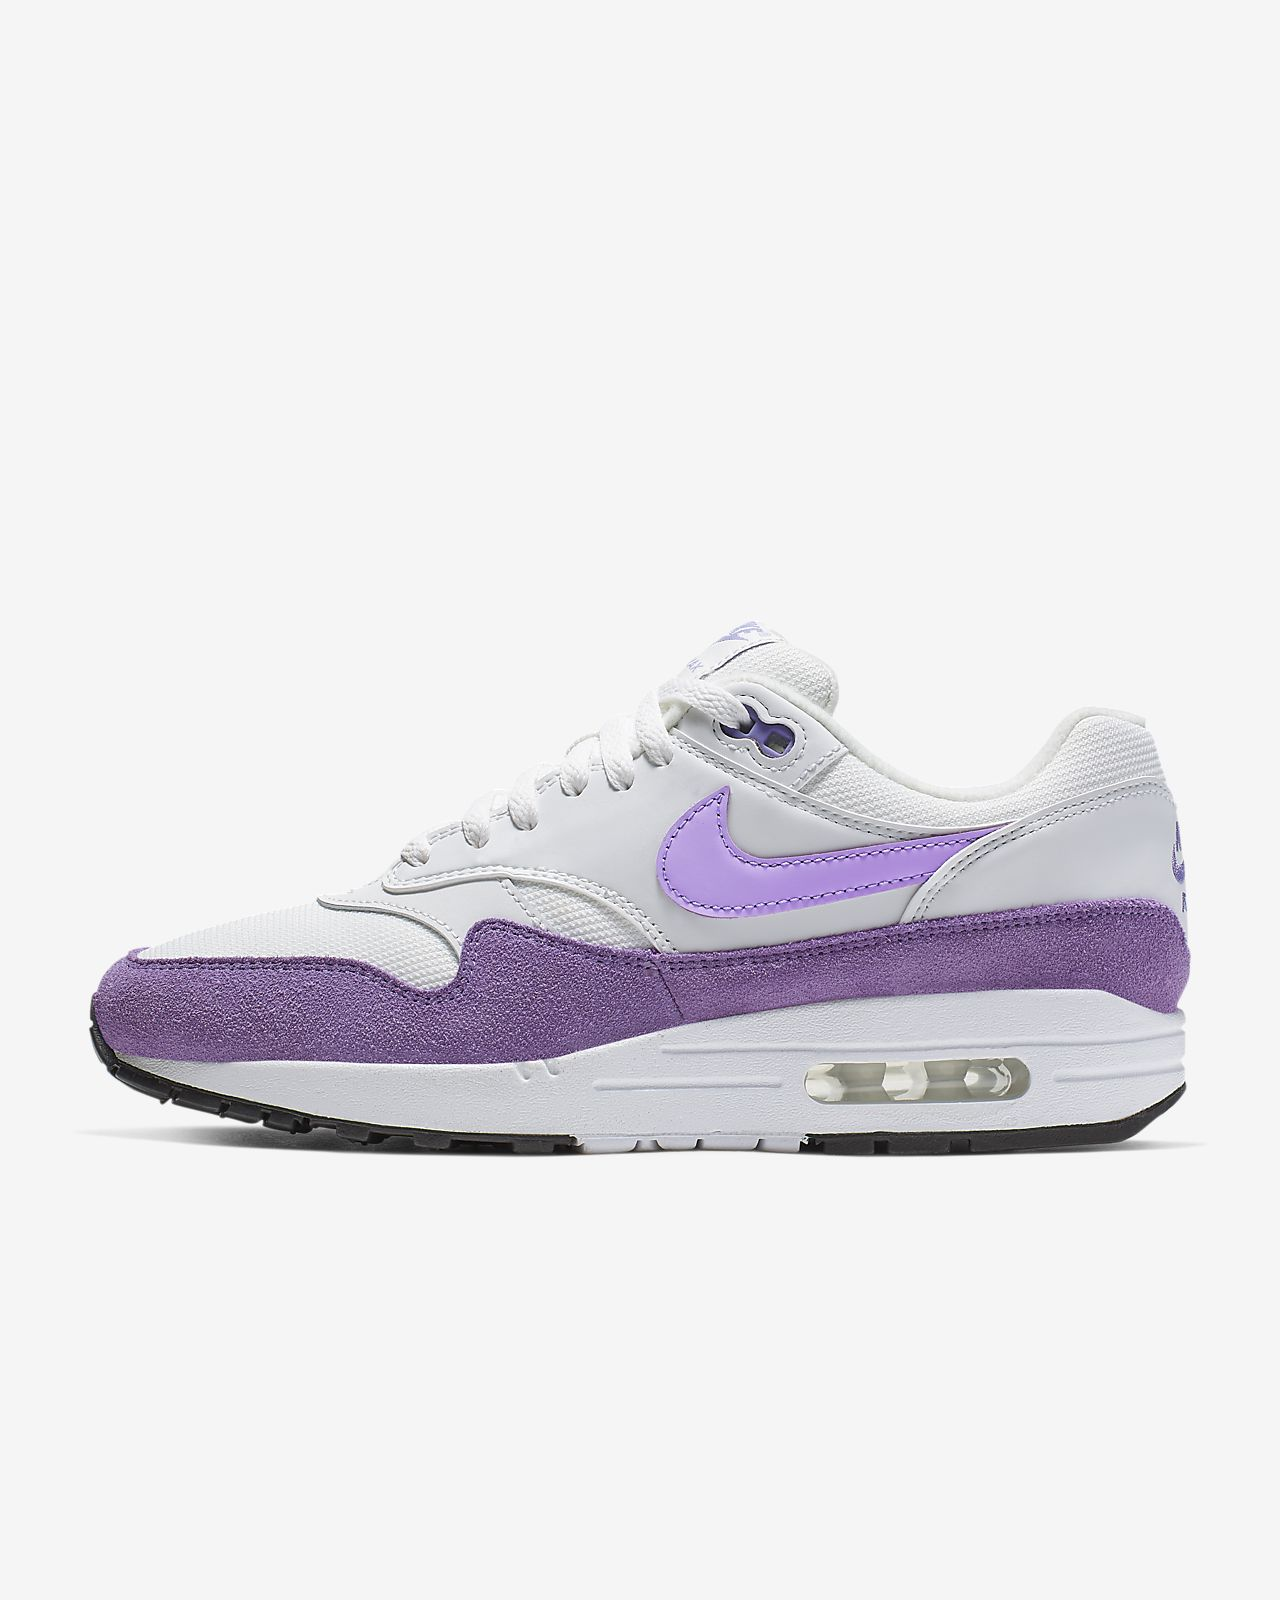 898a01ed952 Low Resolution Nike Air Max 1 Women's Shoe Nike Air Max 1 Women's Shoe